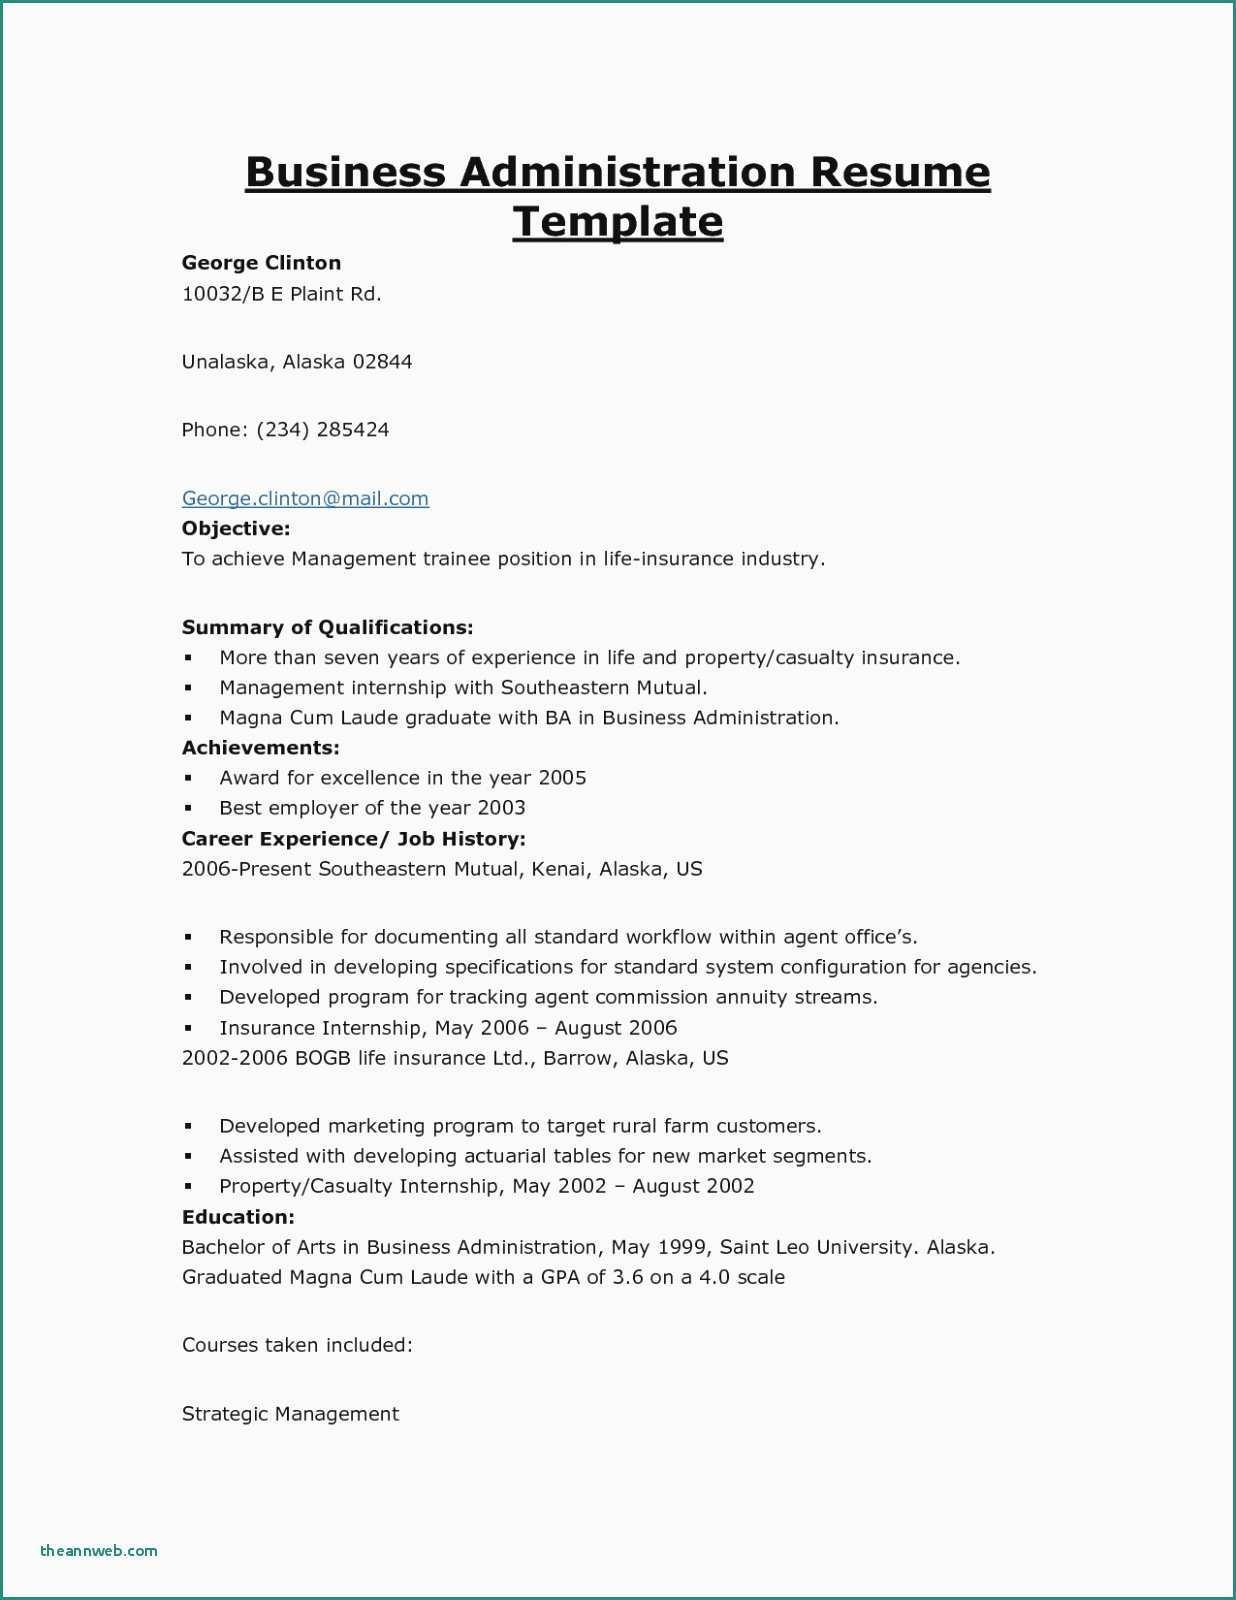 Business Administration Internship Resume Sample